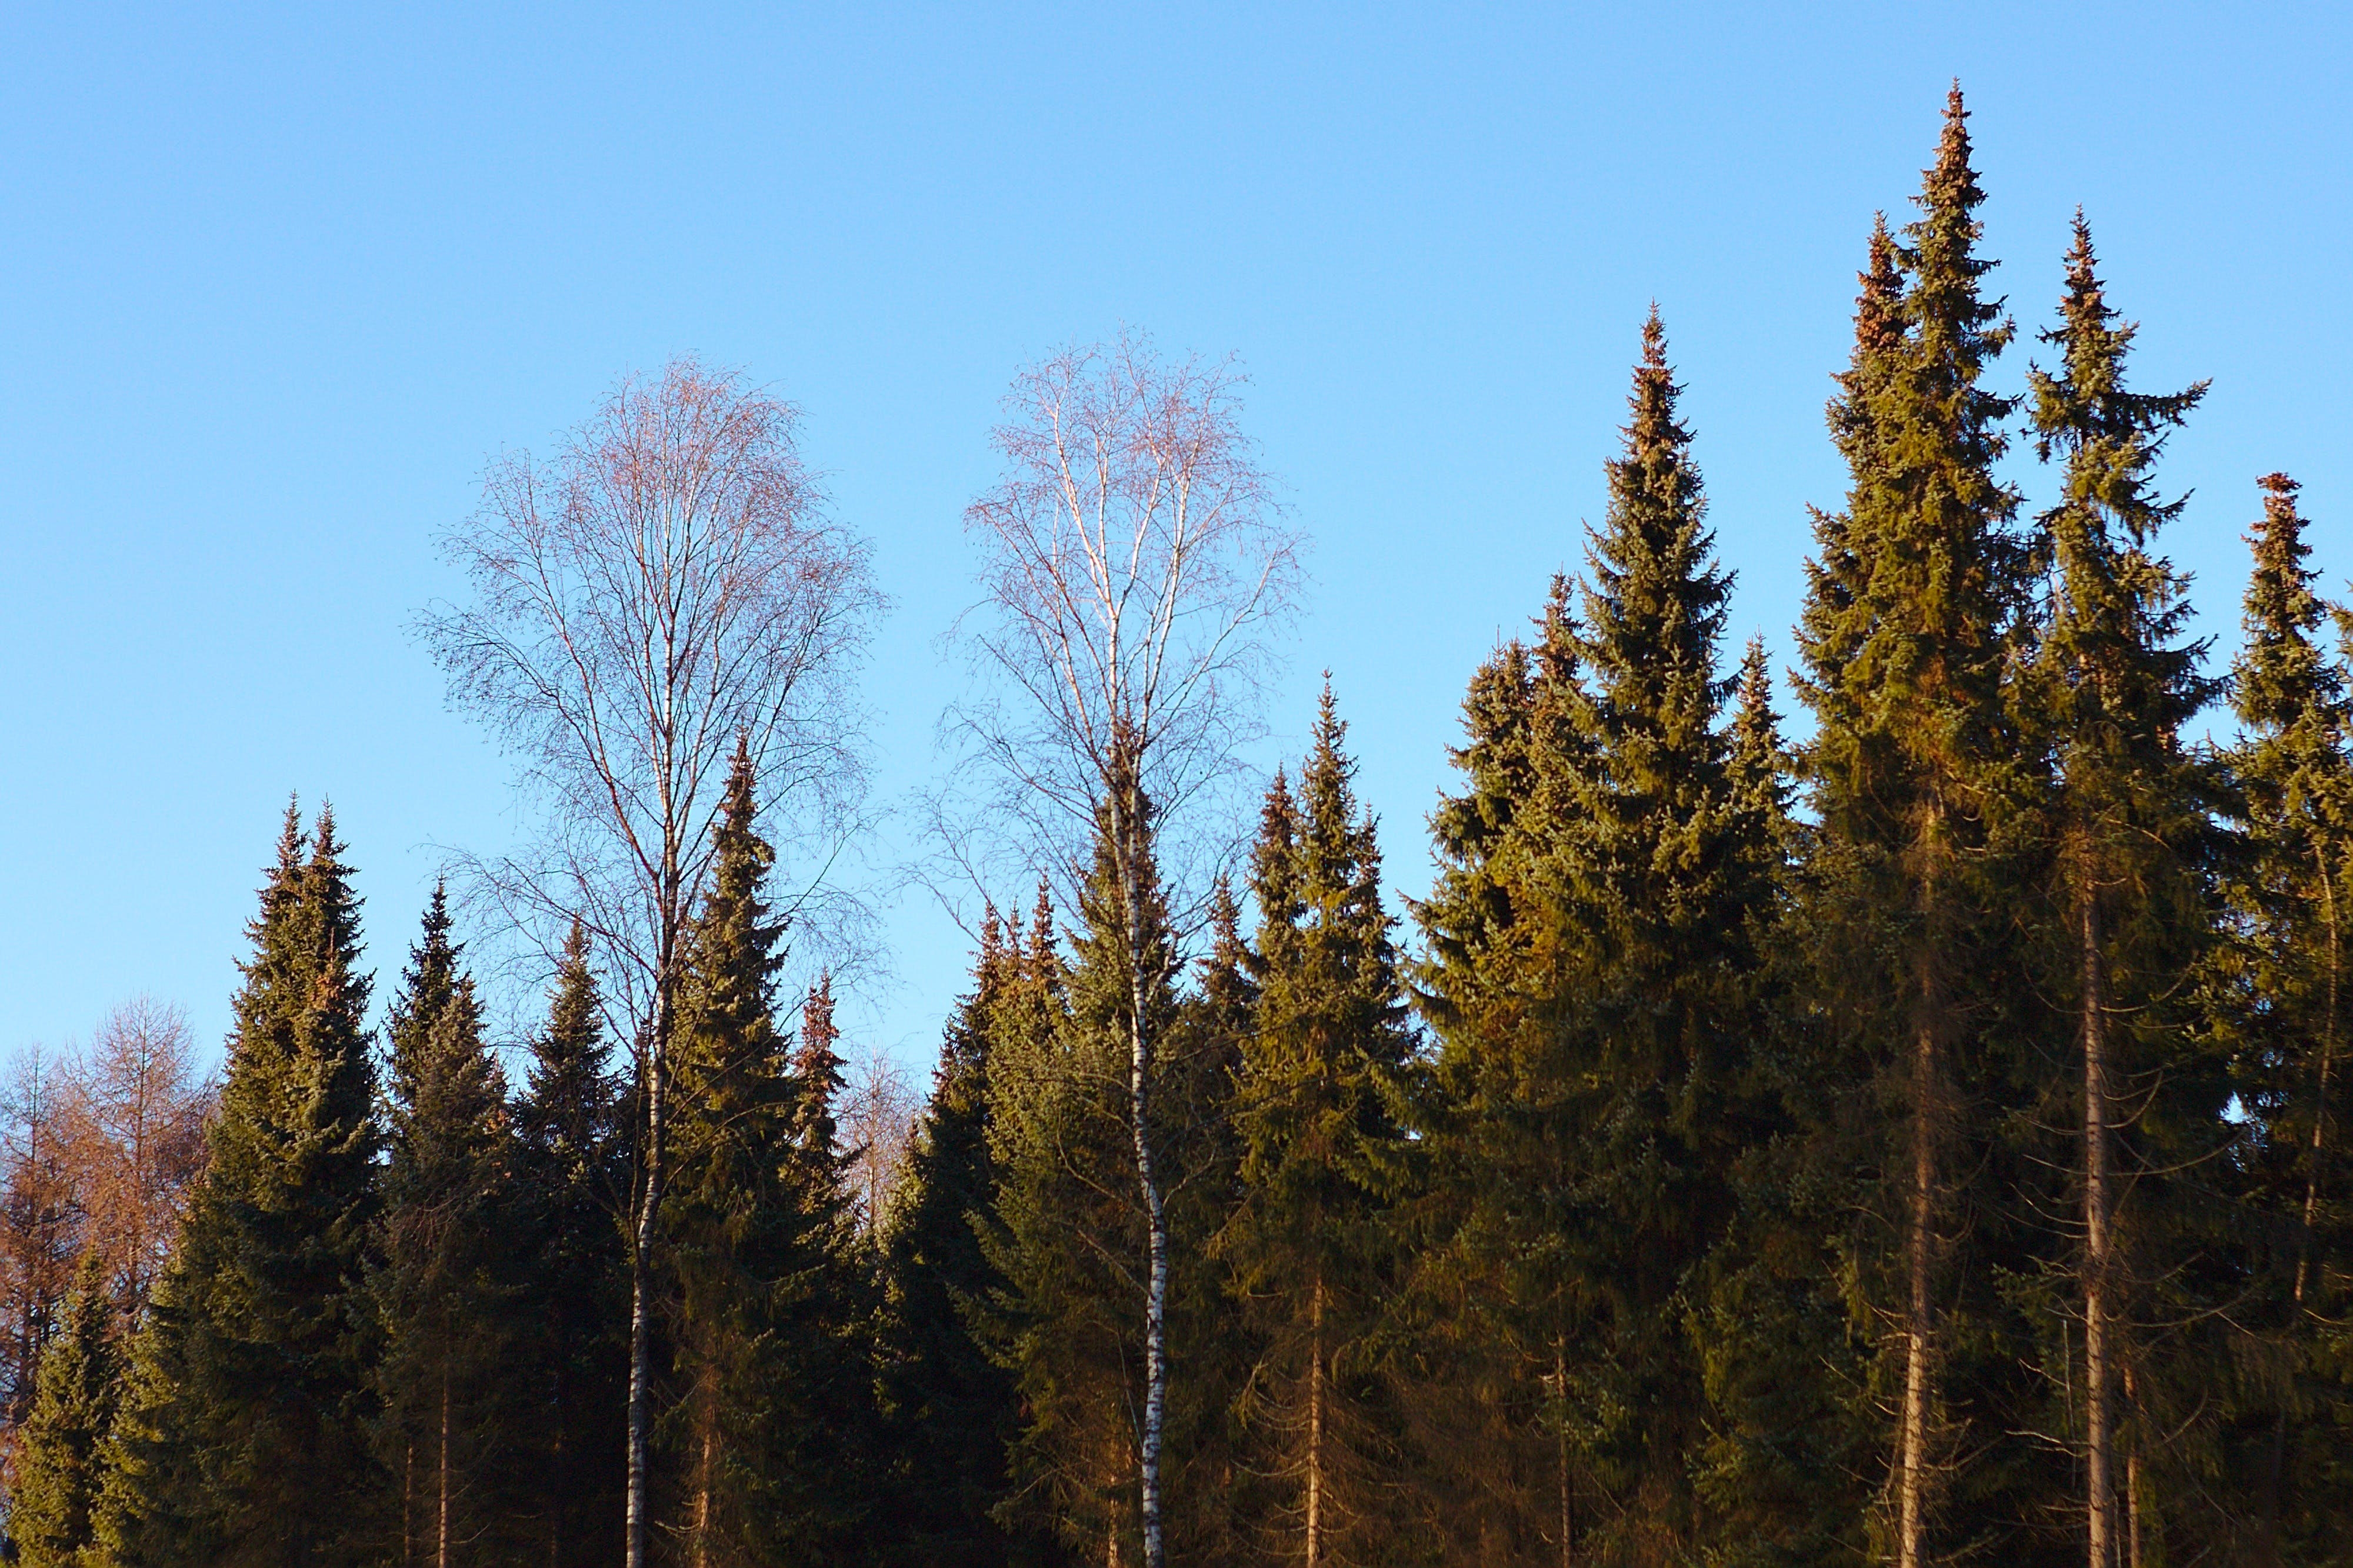 Free stock photo of forest, green, trees, two trees